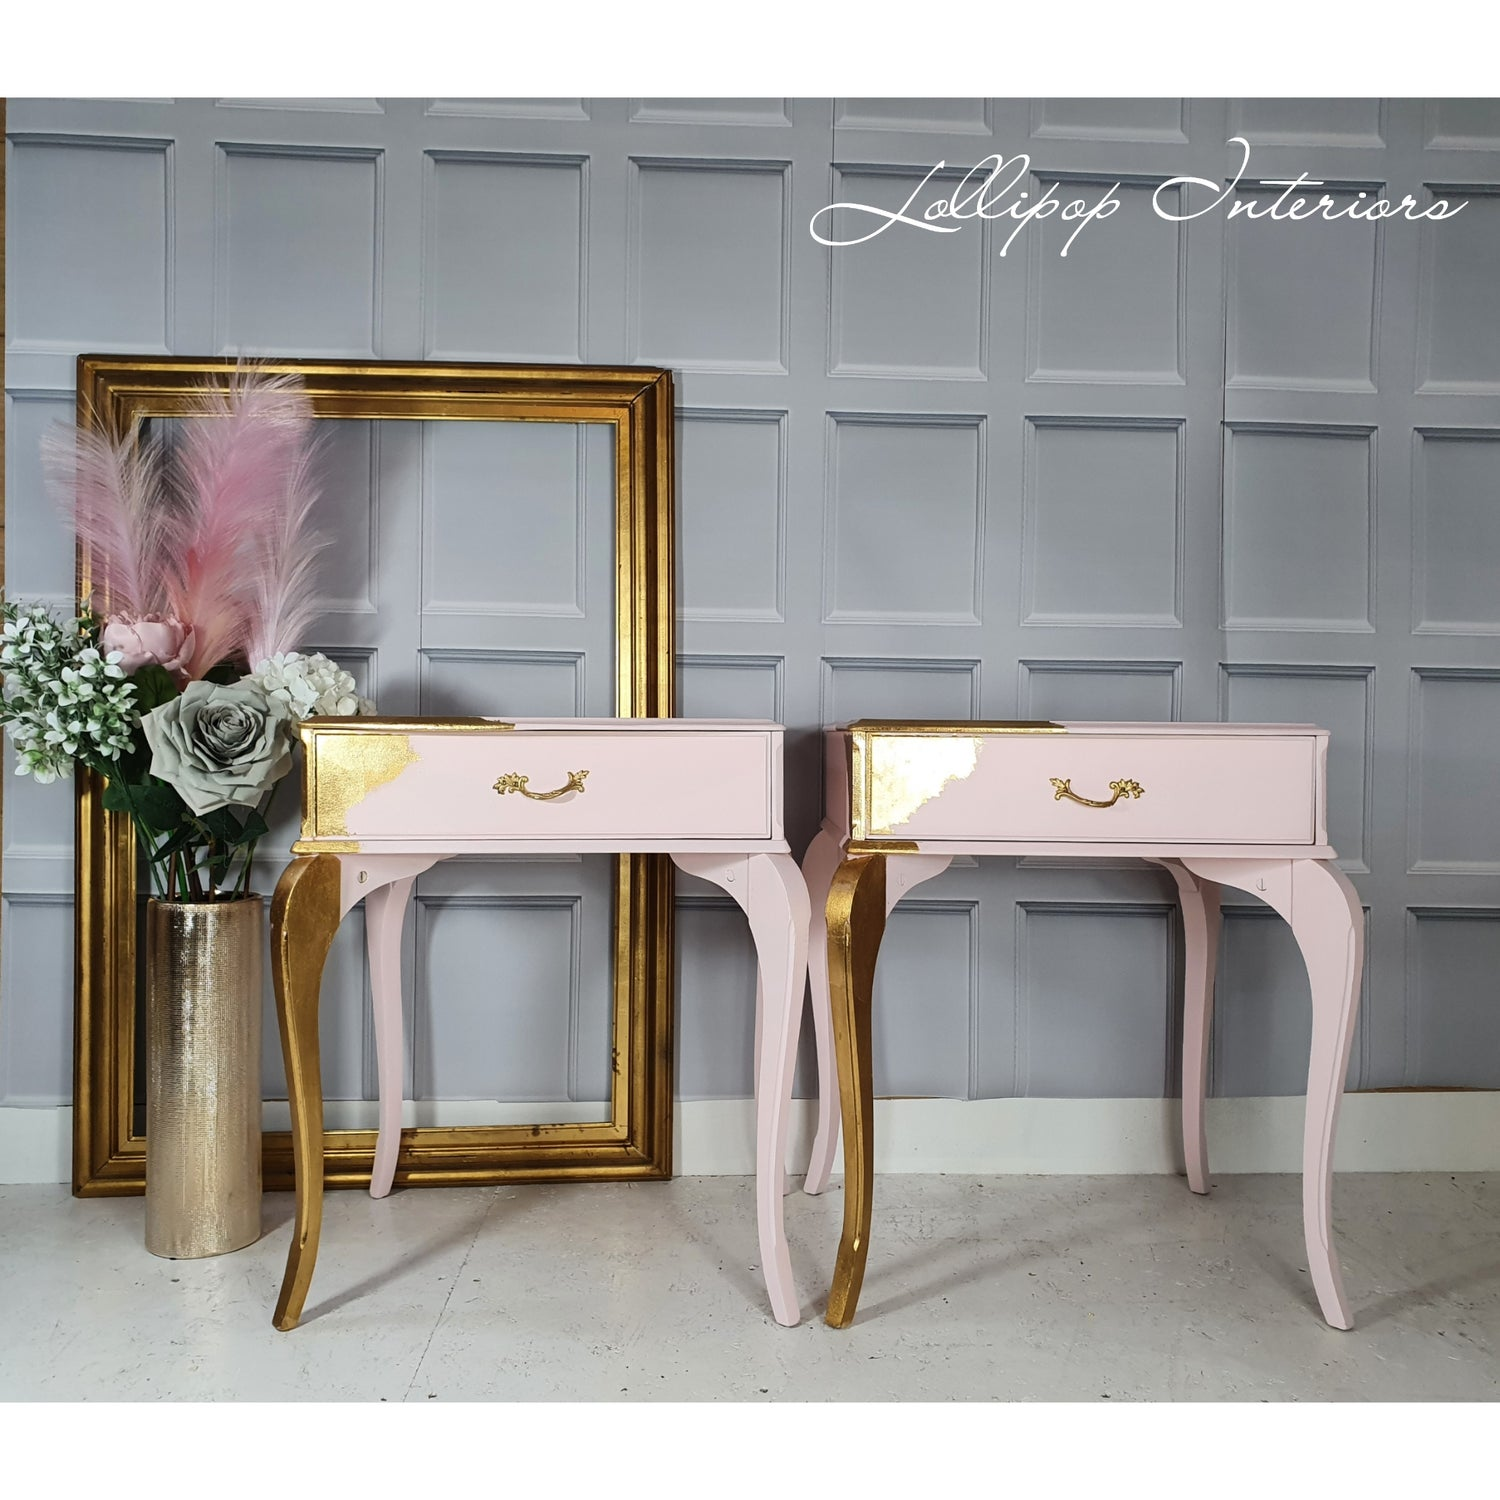 Image of Pink and gold bedside tables